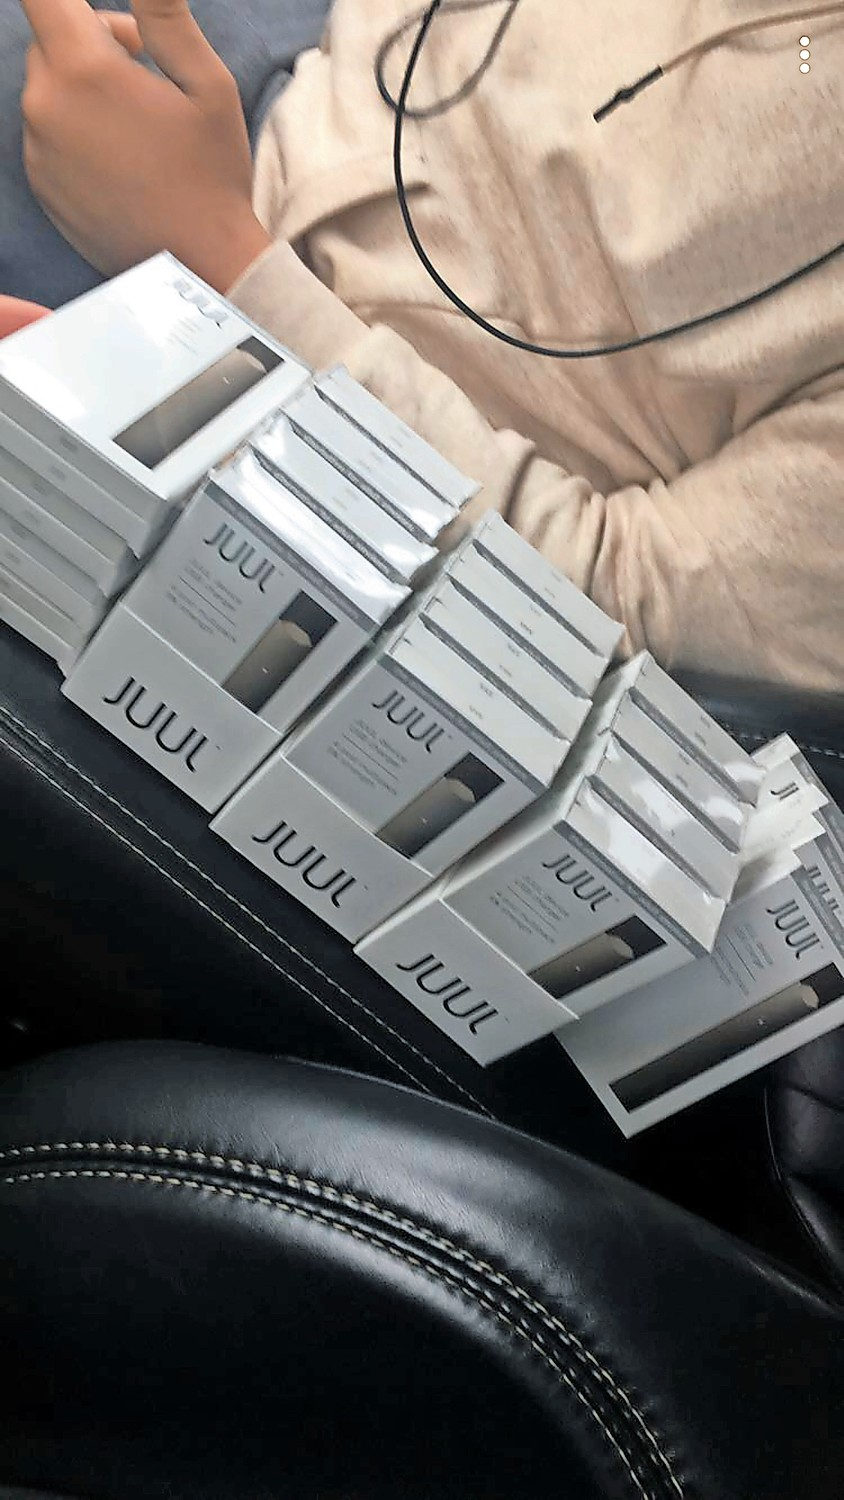 Vaping products are common among students locally and nationwide. The San Francisco-based company Juul produces the most used devices.